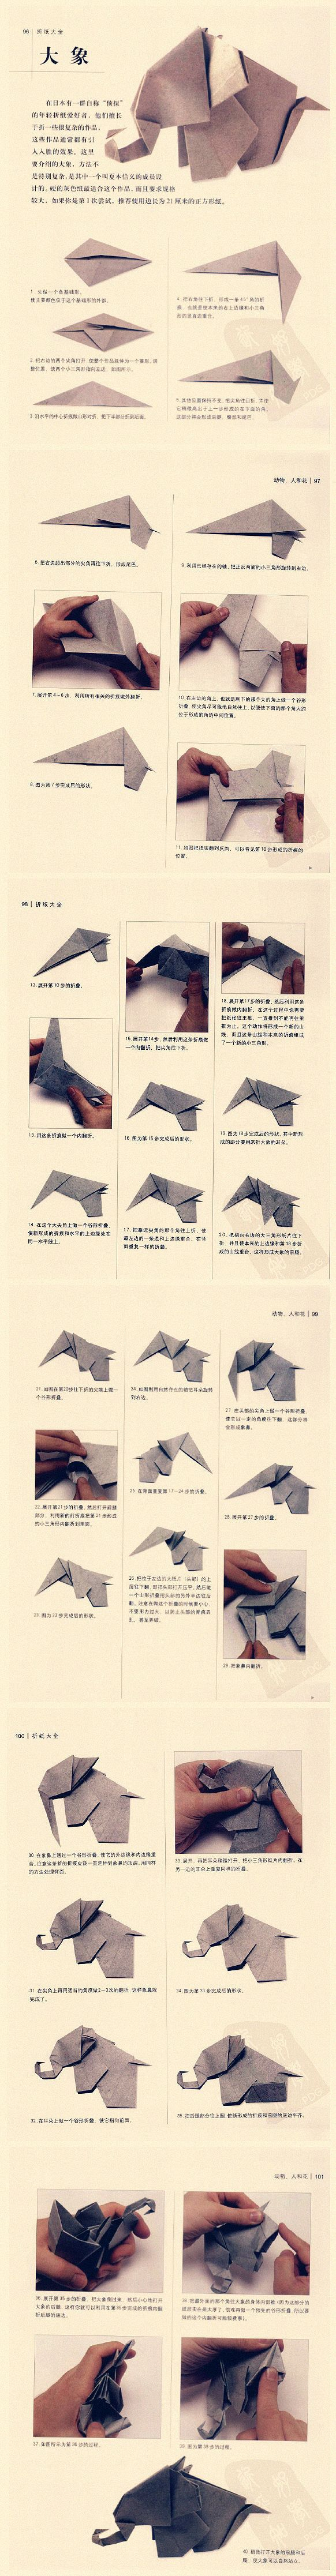 Origami elephant photo instructions.